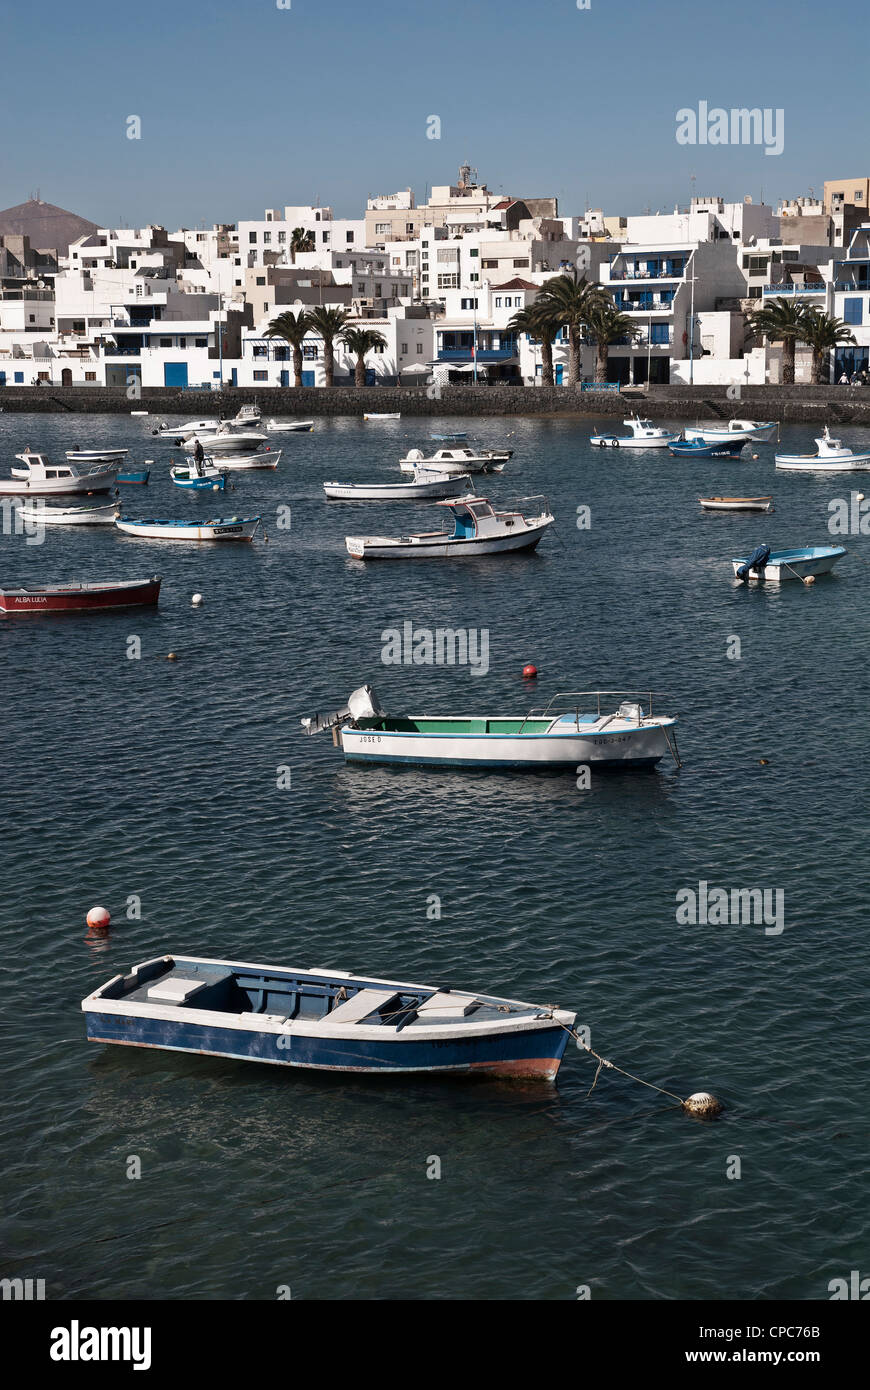 Arrecife, the capital of the Canary Island of Lanzarote, spain - Stock Image